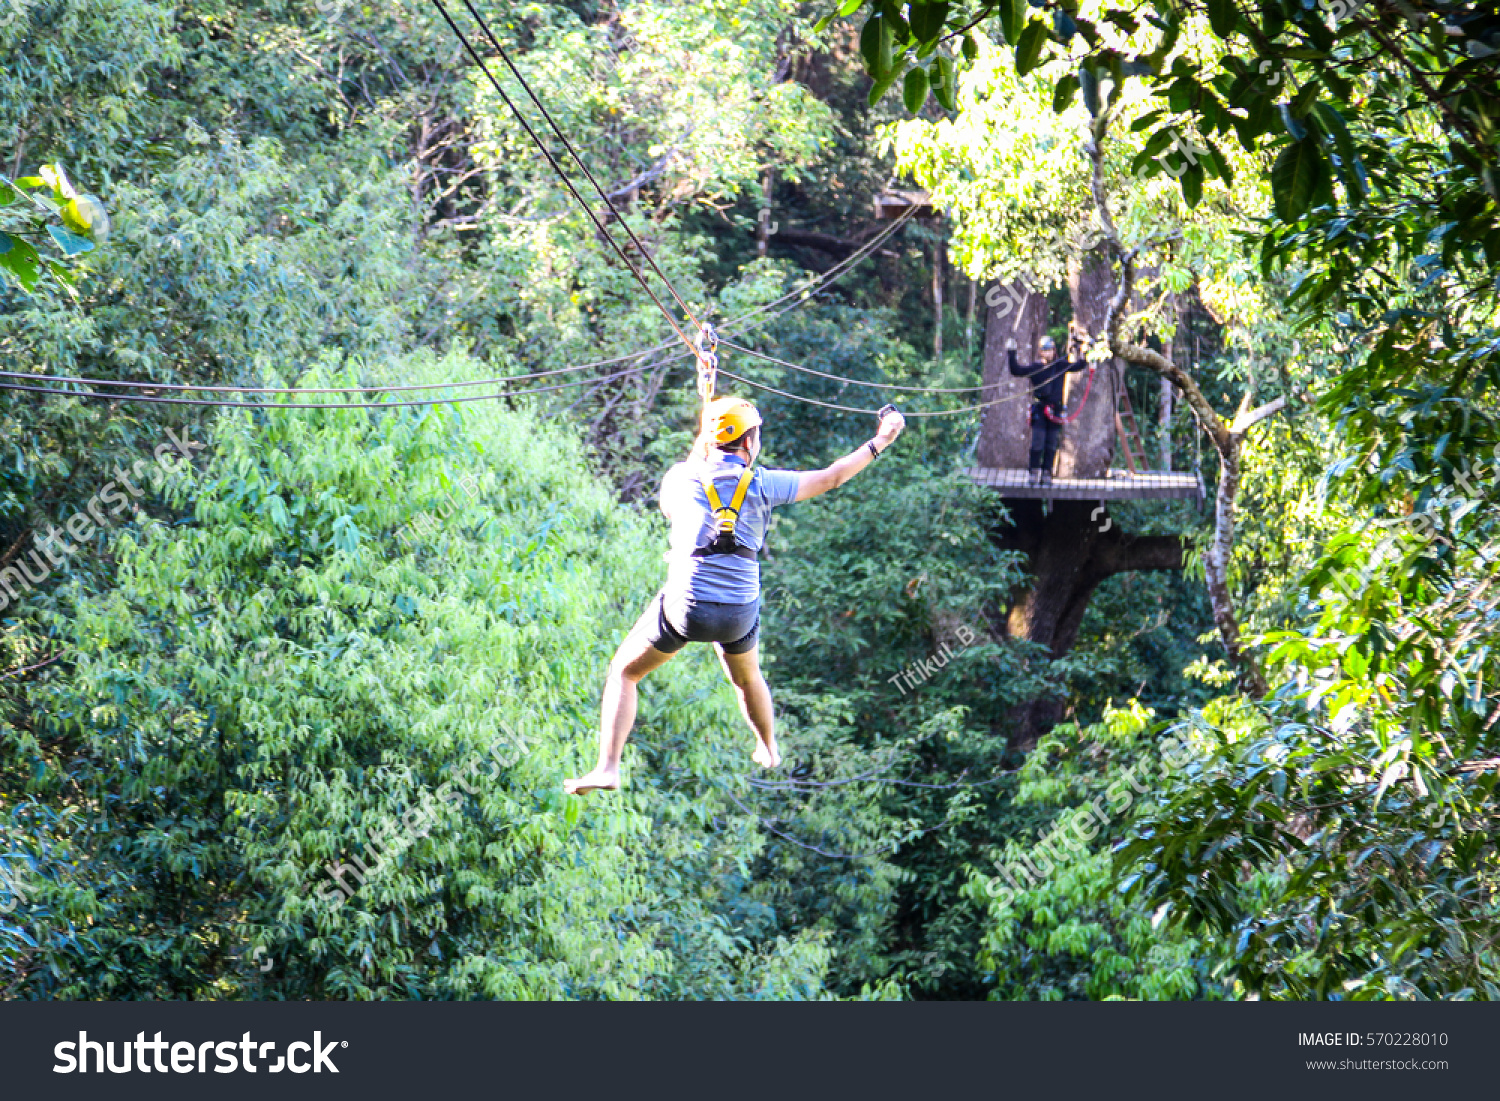 Blurred Traveler Hung On Wire Rope Stock Photo (Edit Now) 570228010 ...